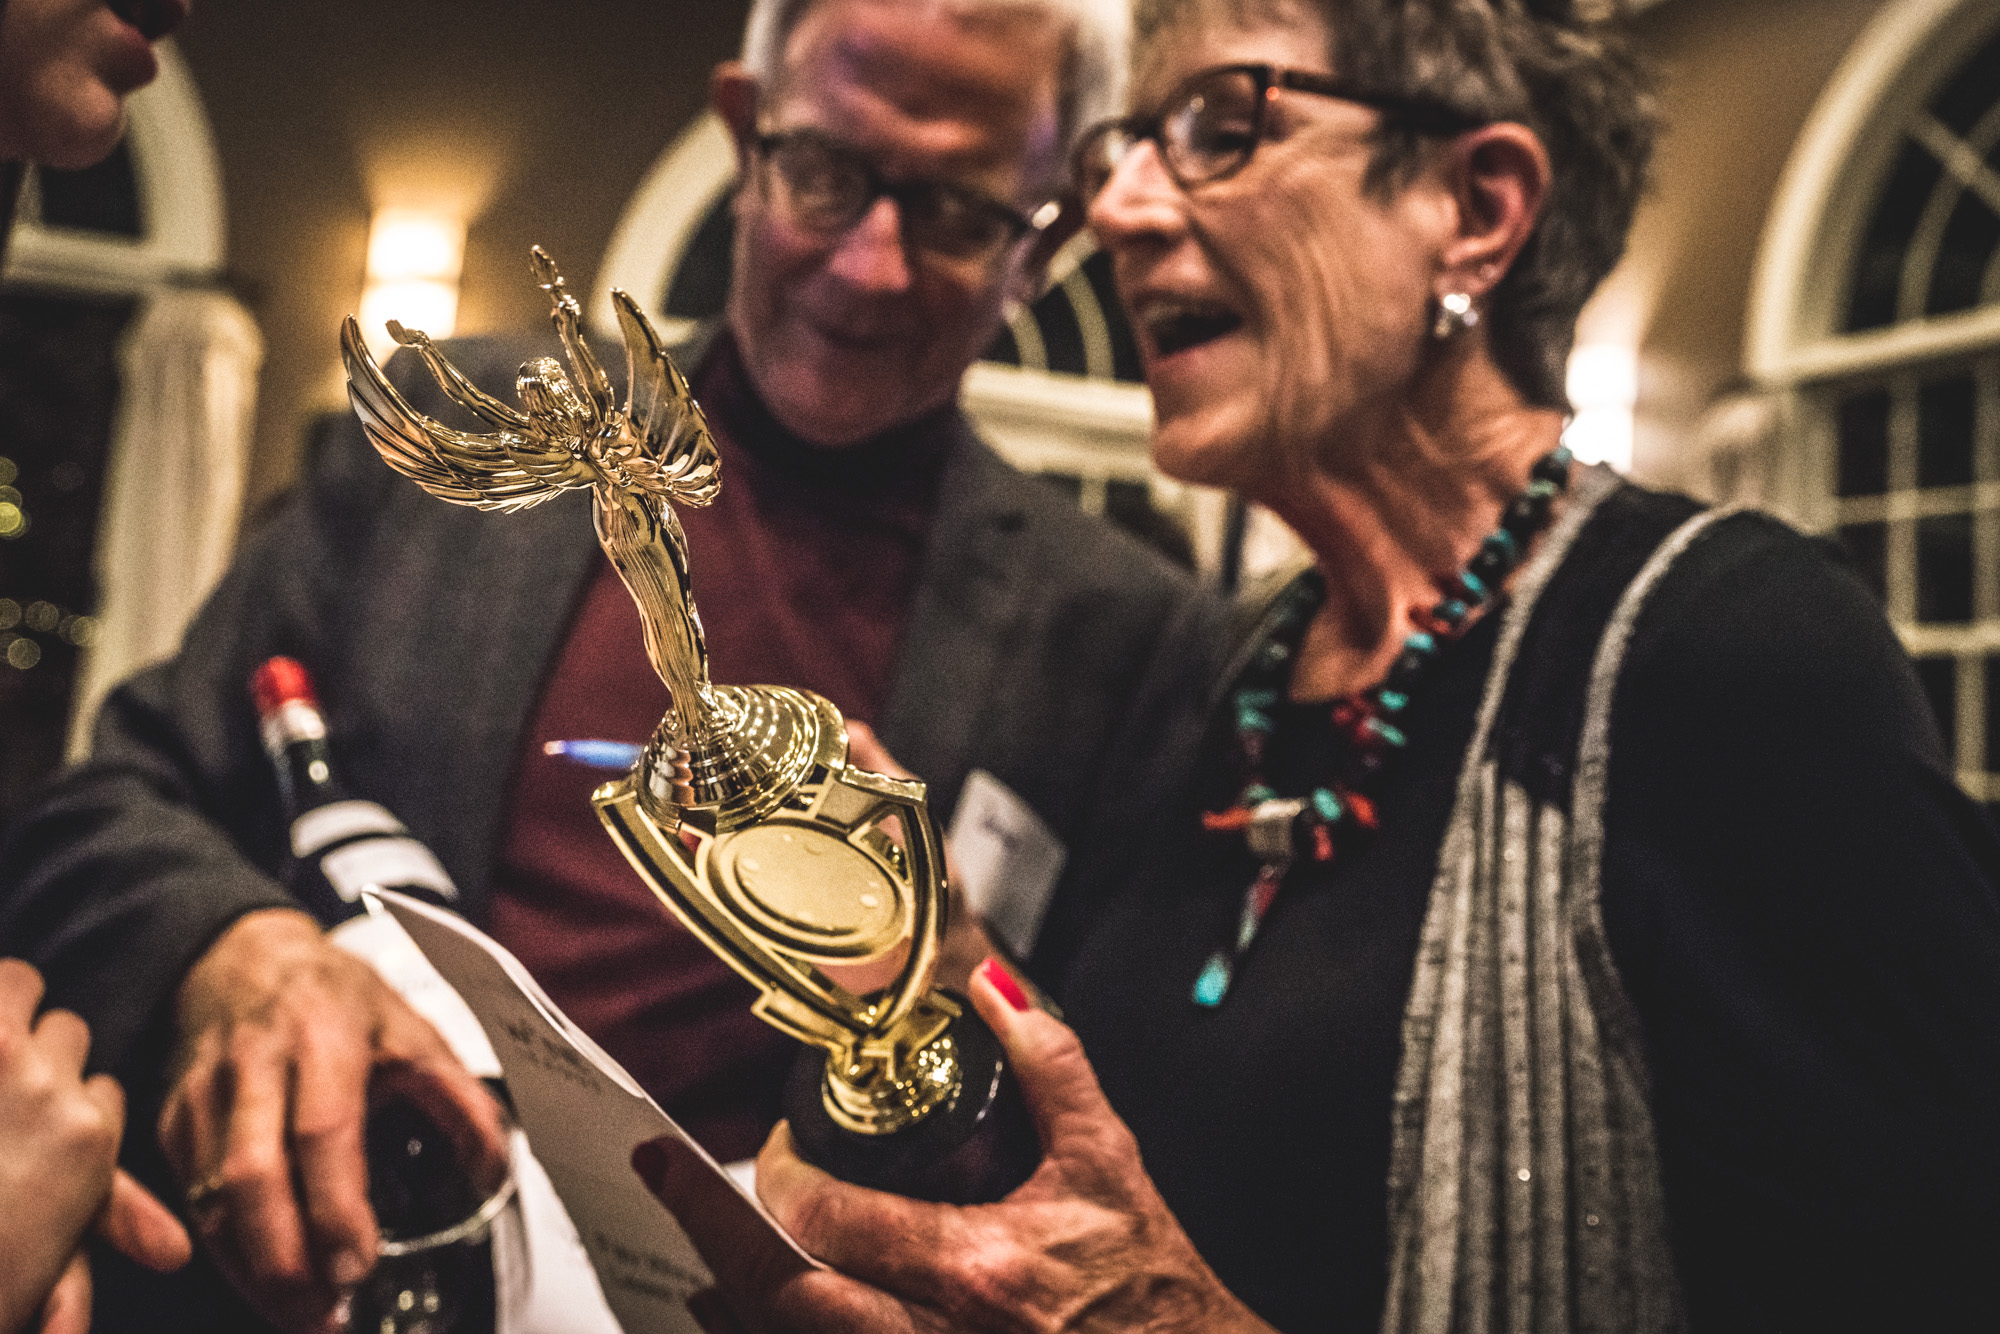 Color photo of a woman and man holding the trophy they won at a competitive wine drinking competition in Denver, CO.